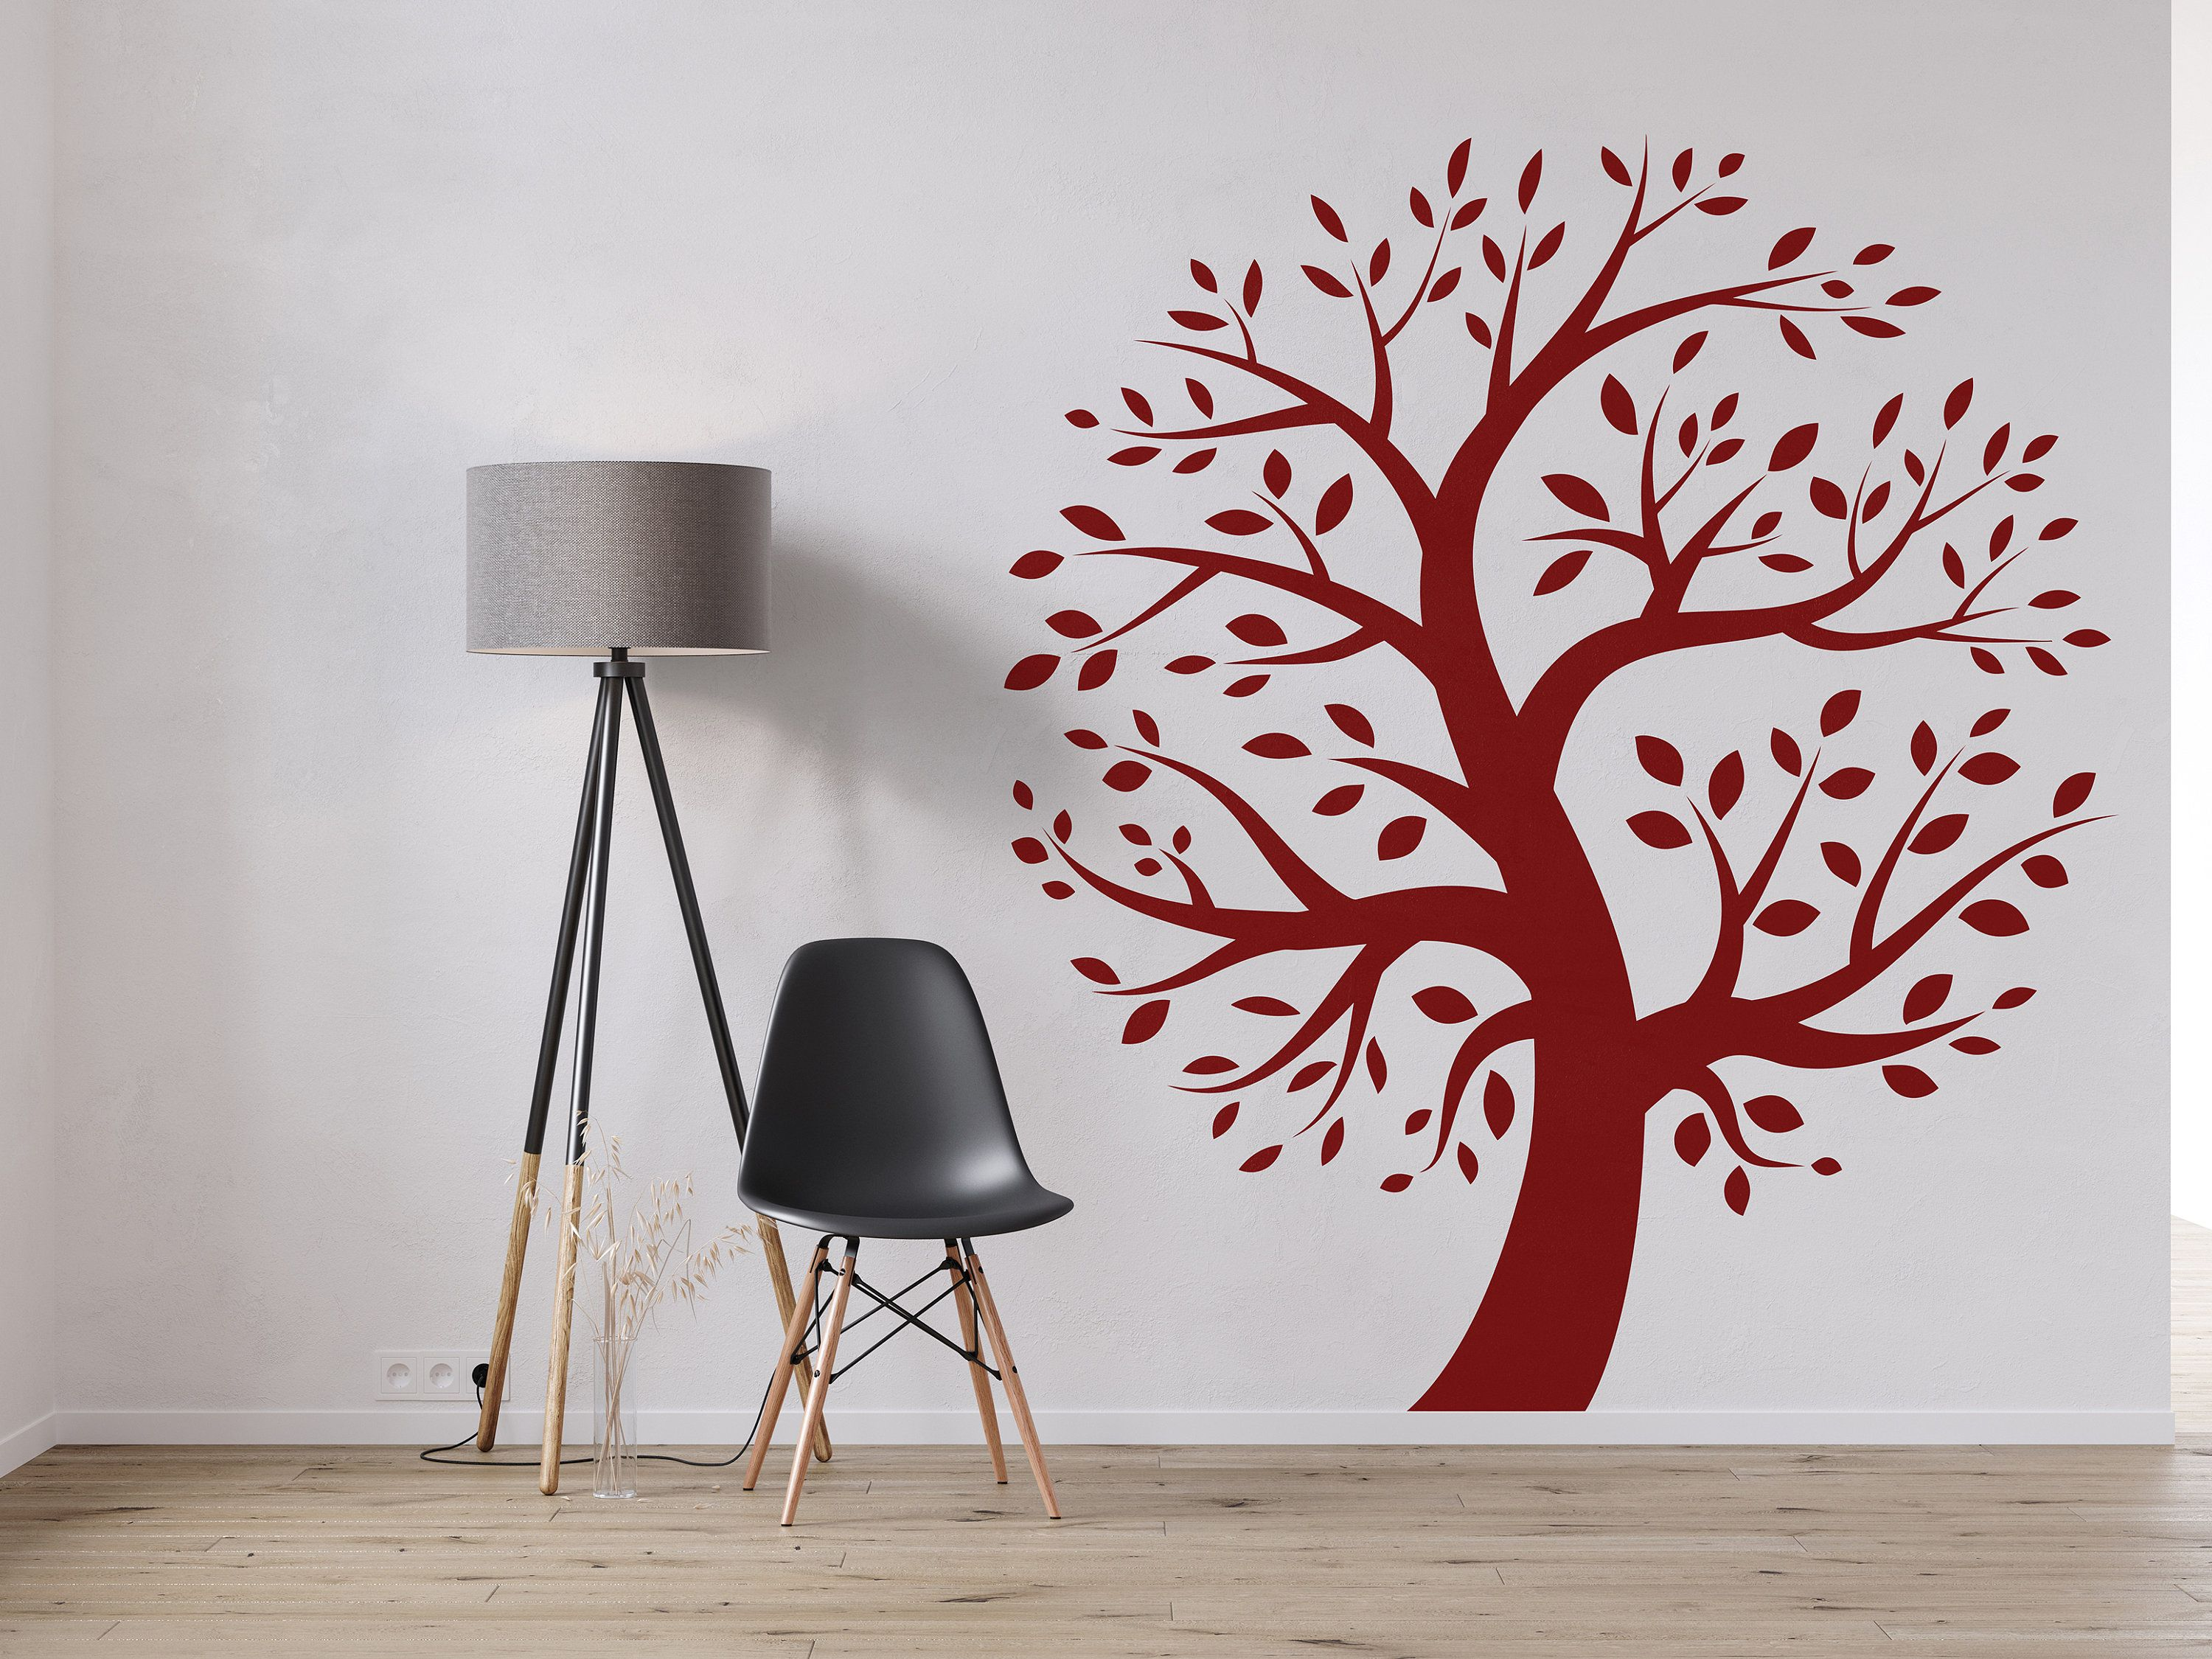 Tree Wall Decal Sticker Bedroom Tree Of Life Roots Birds Etsy In 2020 Tree Wall Decal Wall Decal Sticker Wall Decals